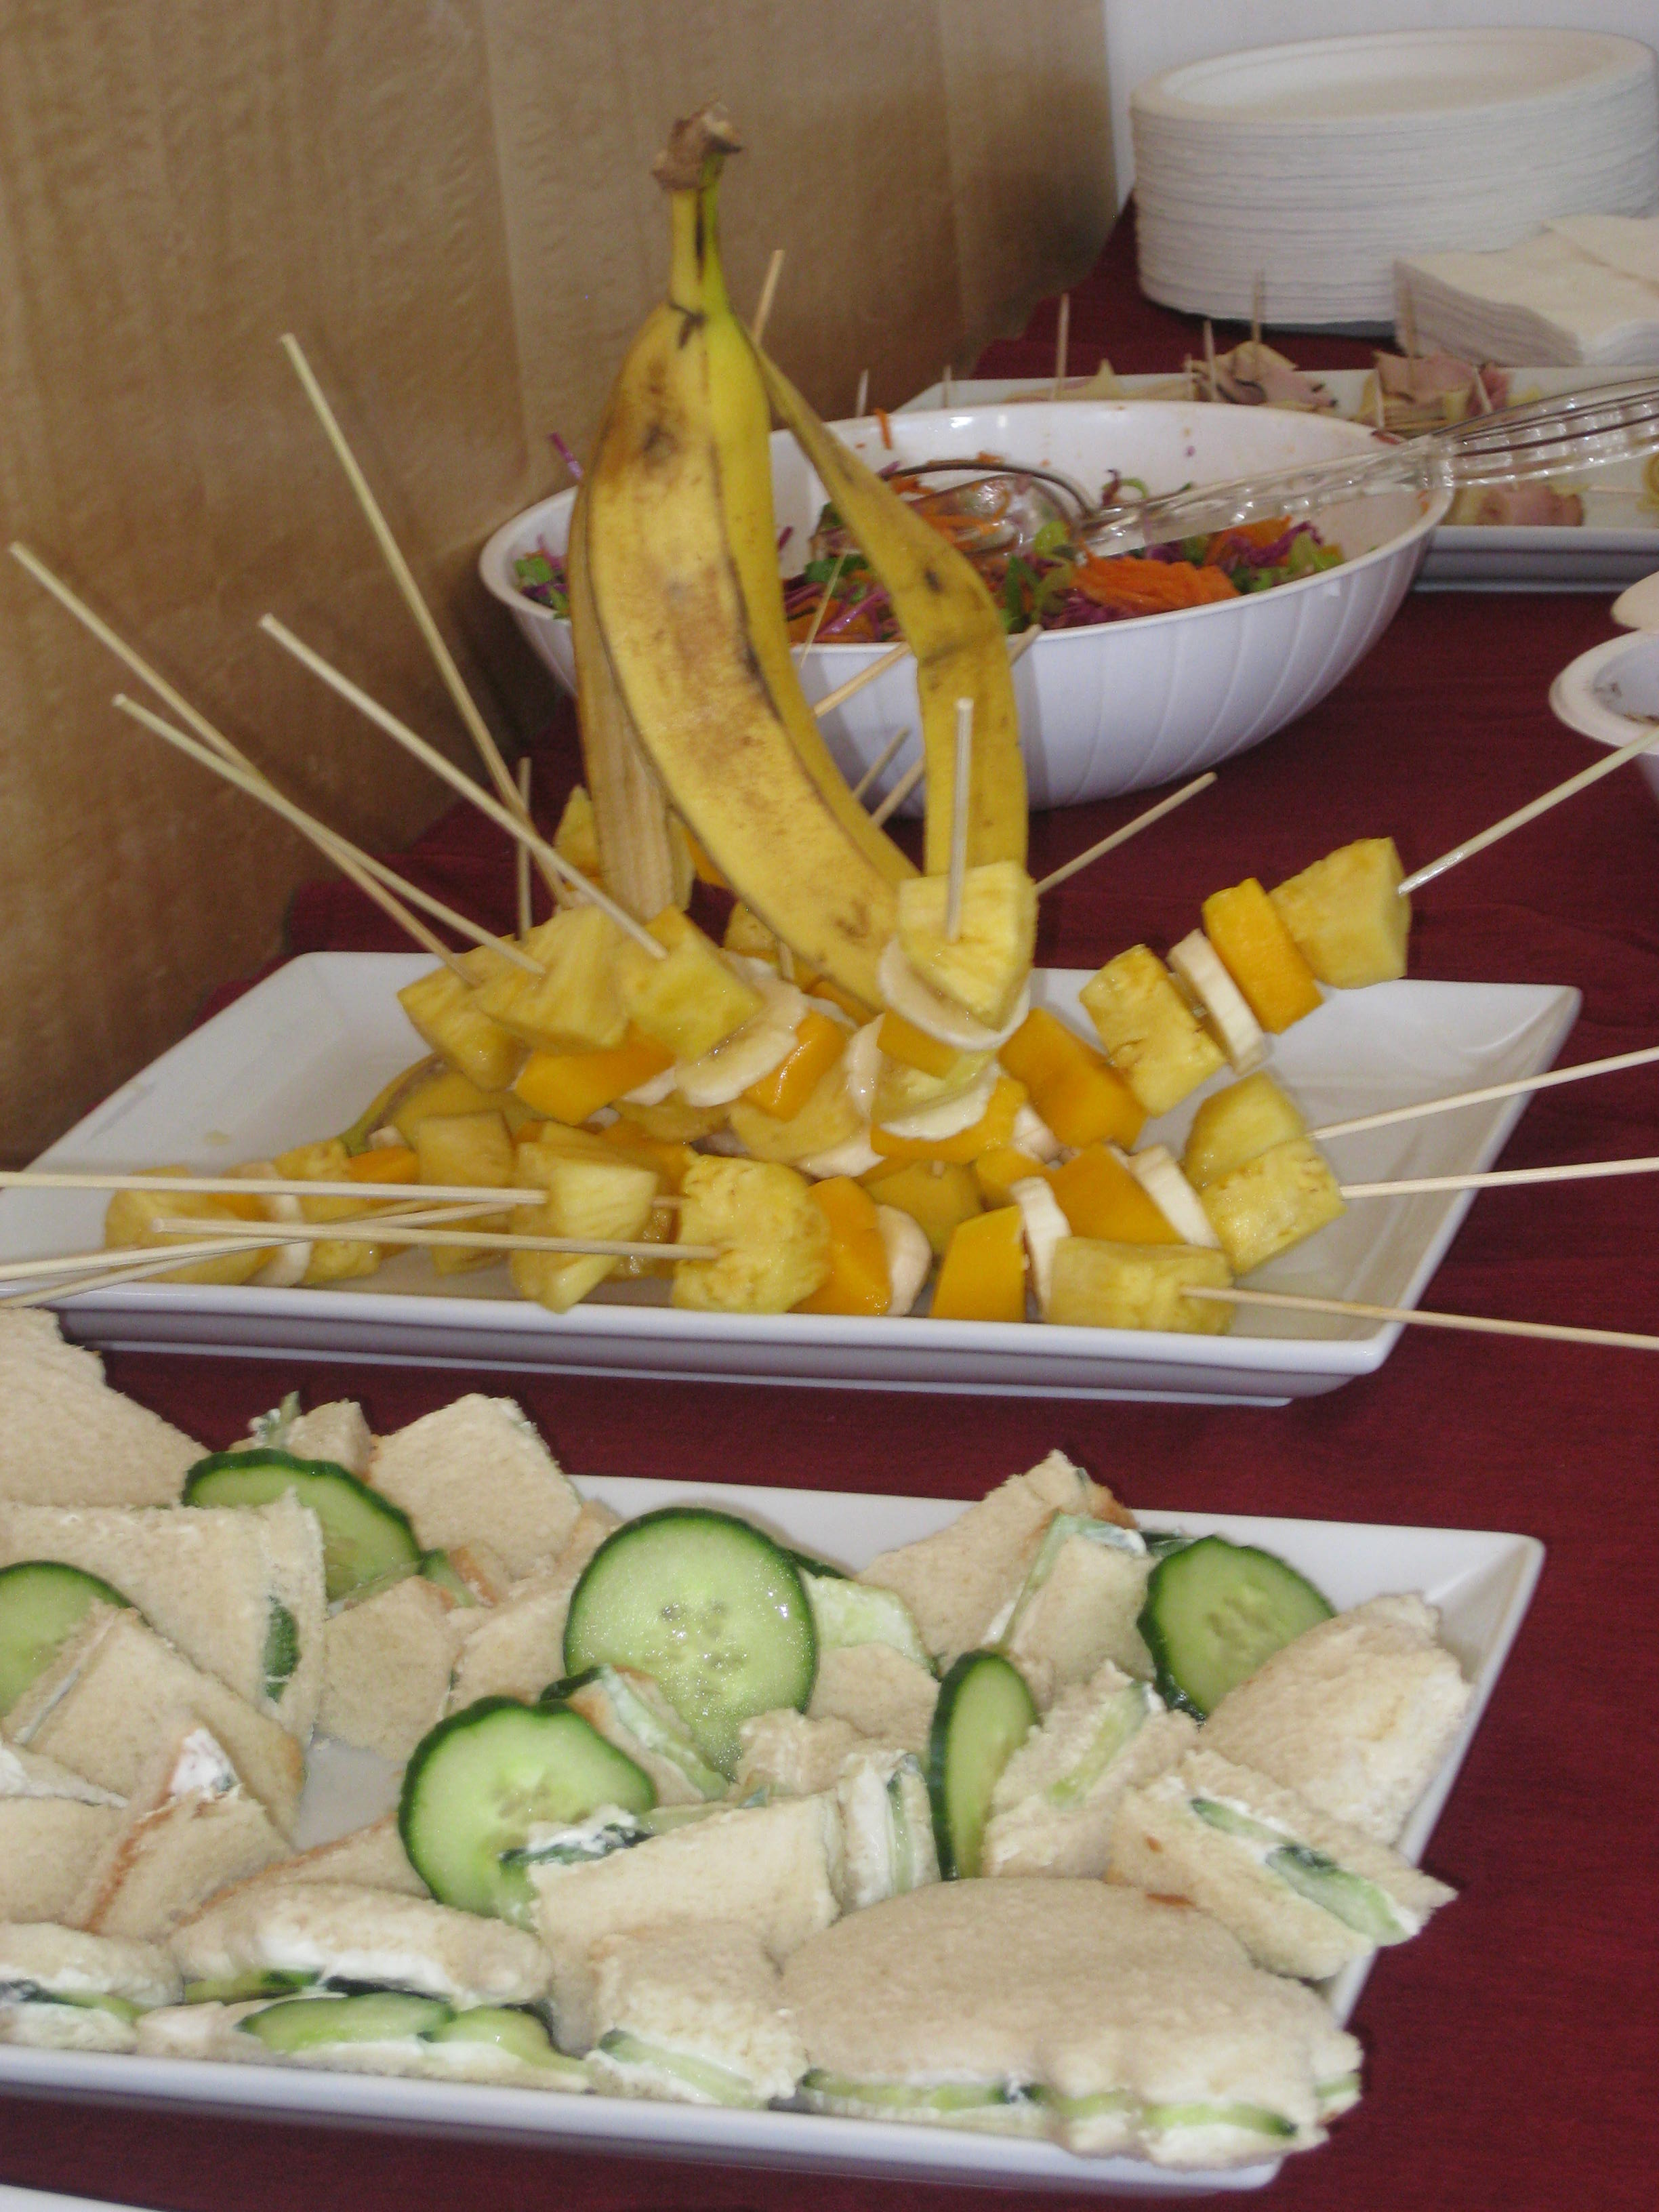 And the result...sculptural skewers and artful tea sandwiches!